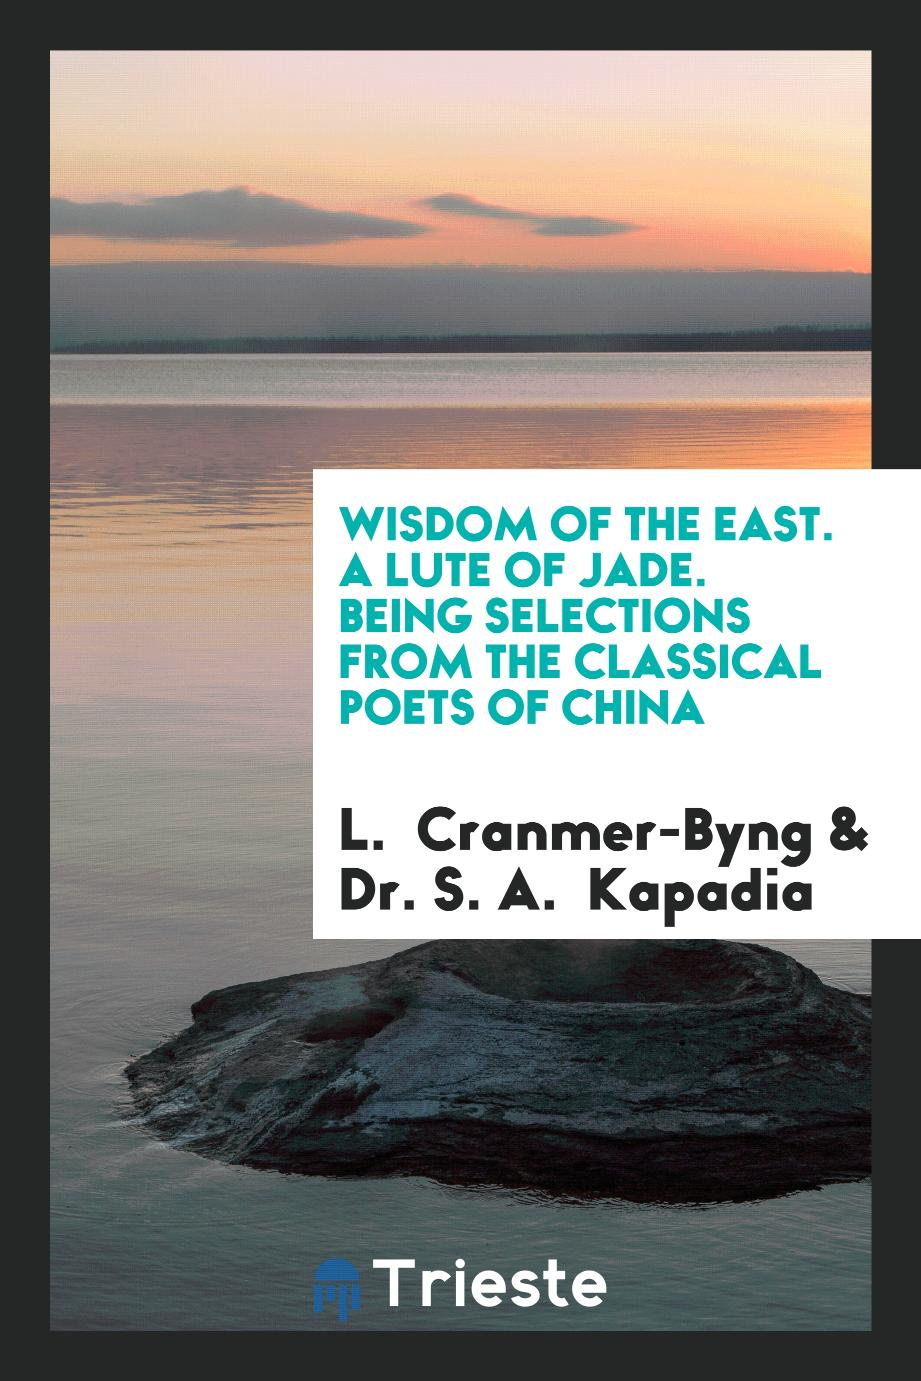 Wisdom of the East. A Lute of Jade. Being Selections from the Classical Poets of China